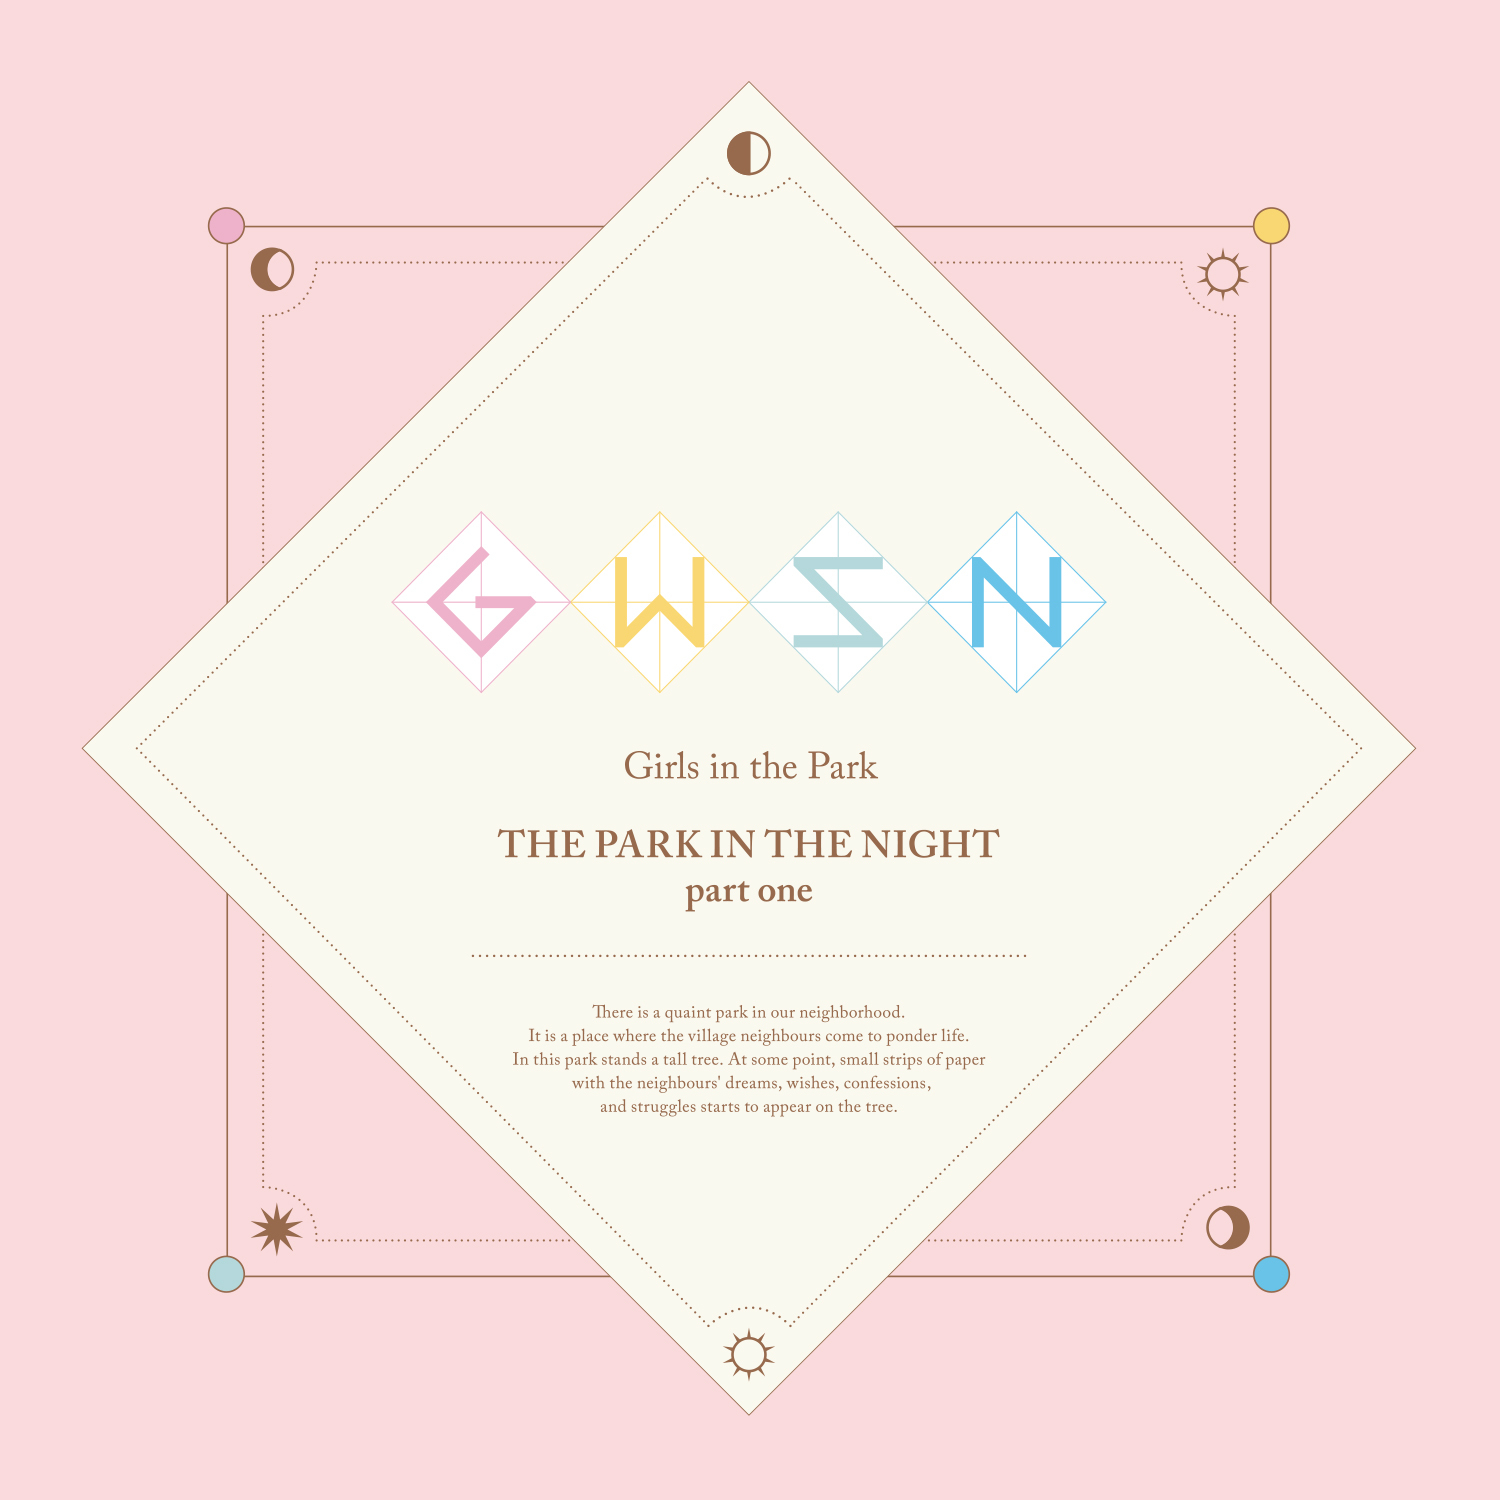 20180930.1958.1 GWSN - The Park in the Night - Part One cover.jpg